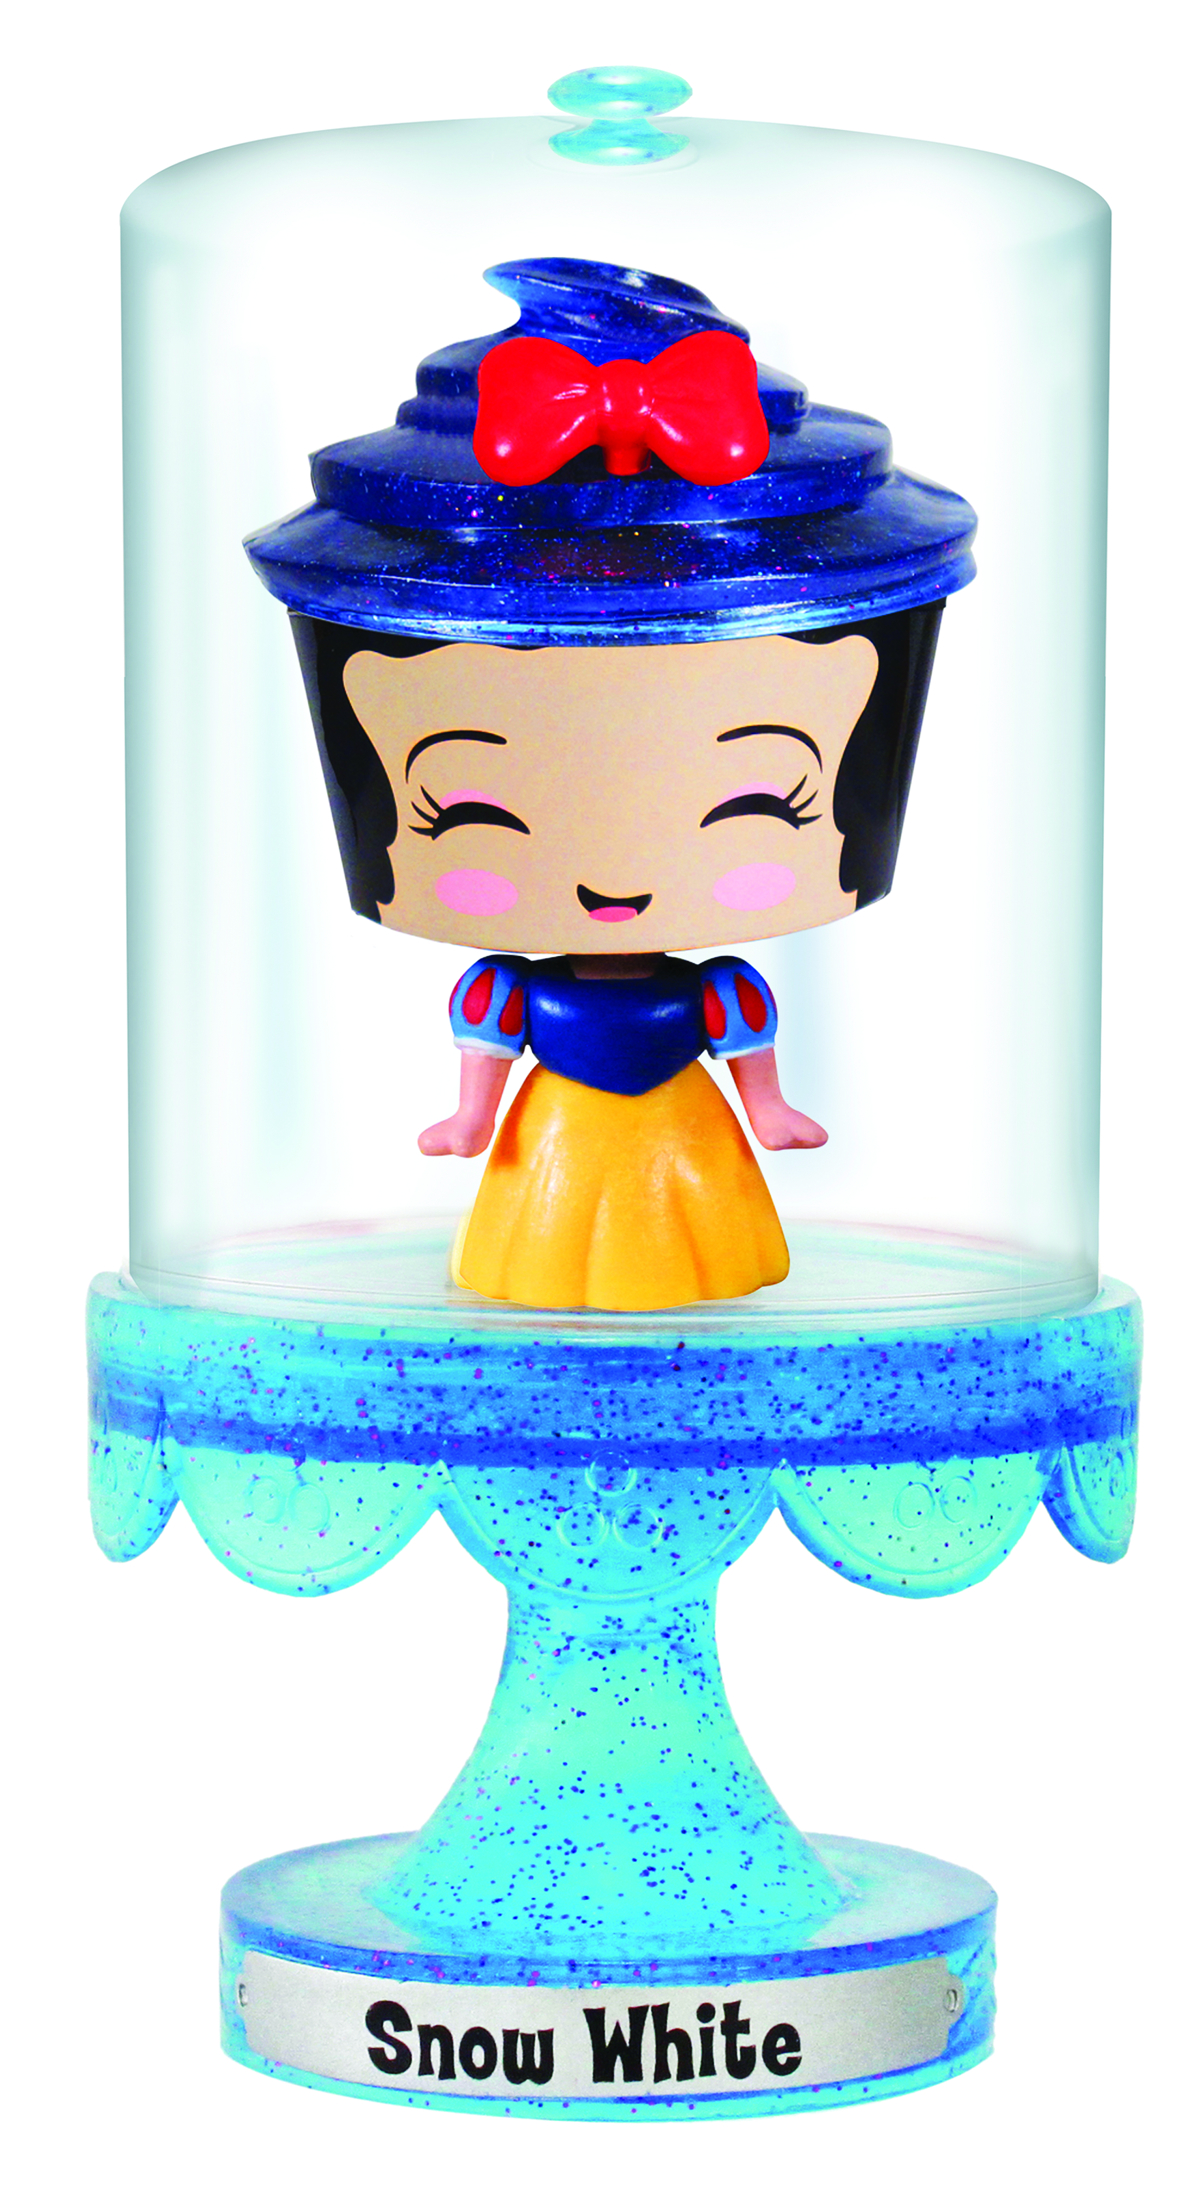 DISNEY SNOW WHITE CUPCAKE KEEPSAKES FIG